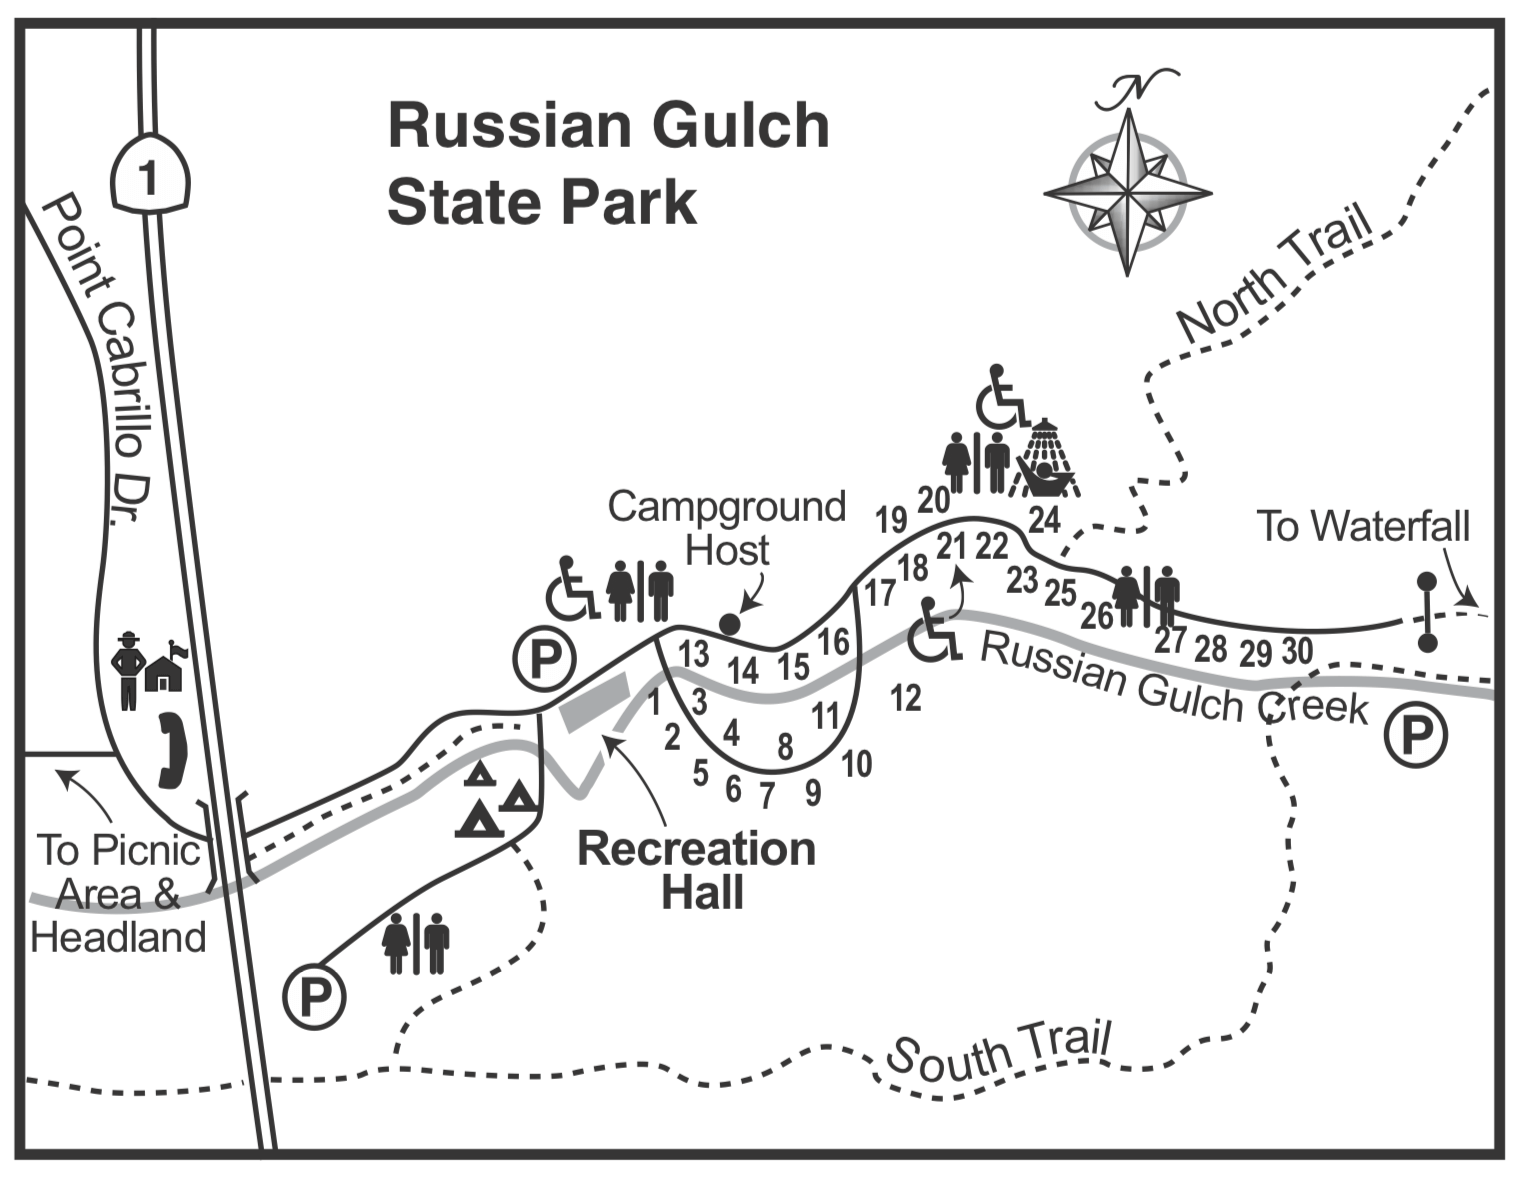 Russian Gulch State Park Campsite Photos And Campground